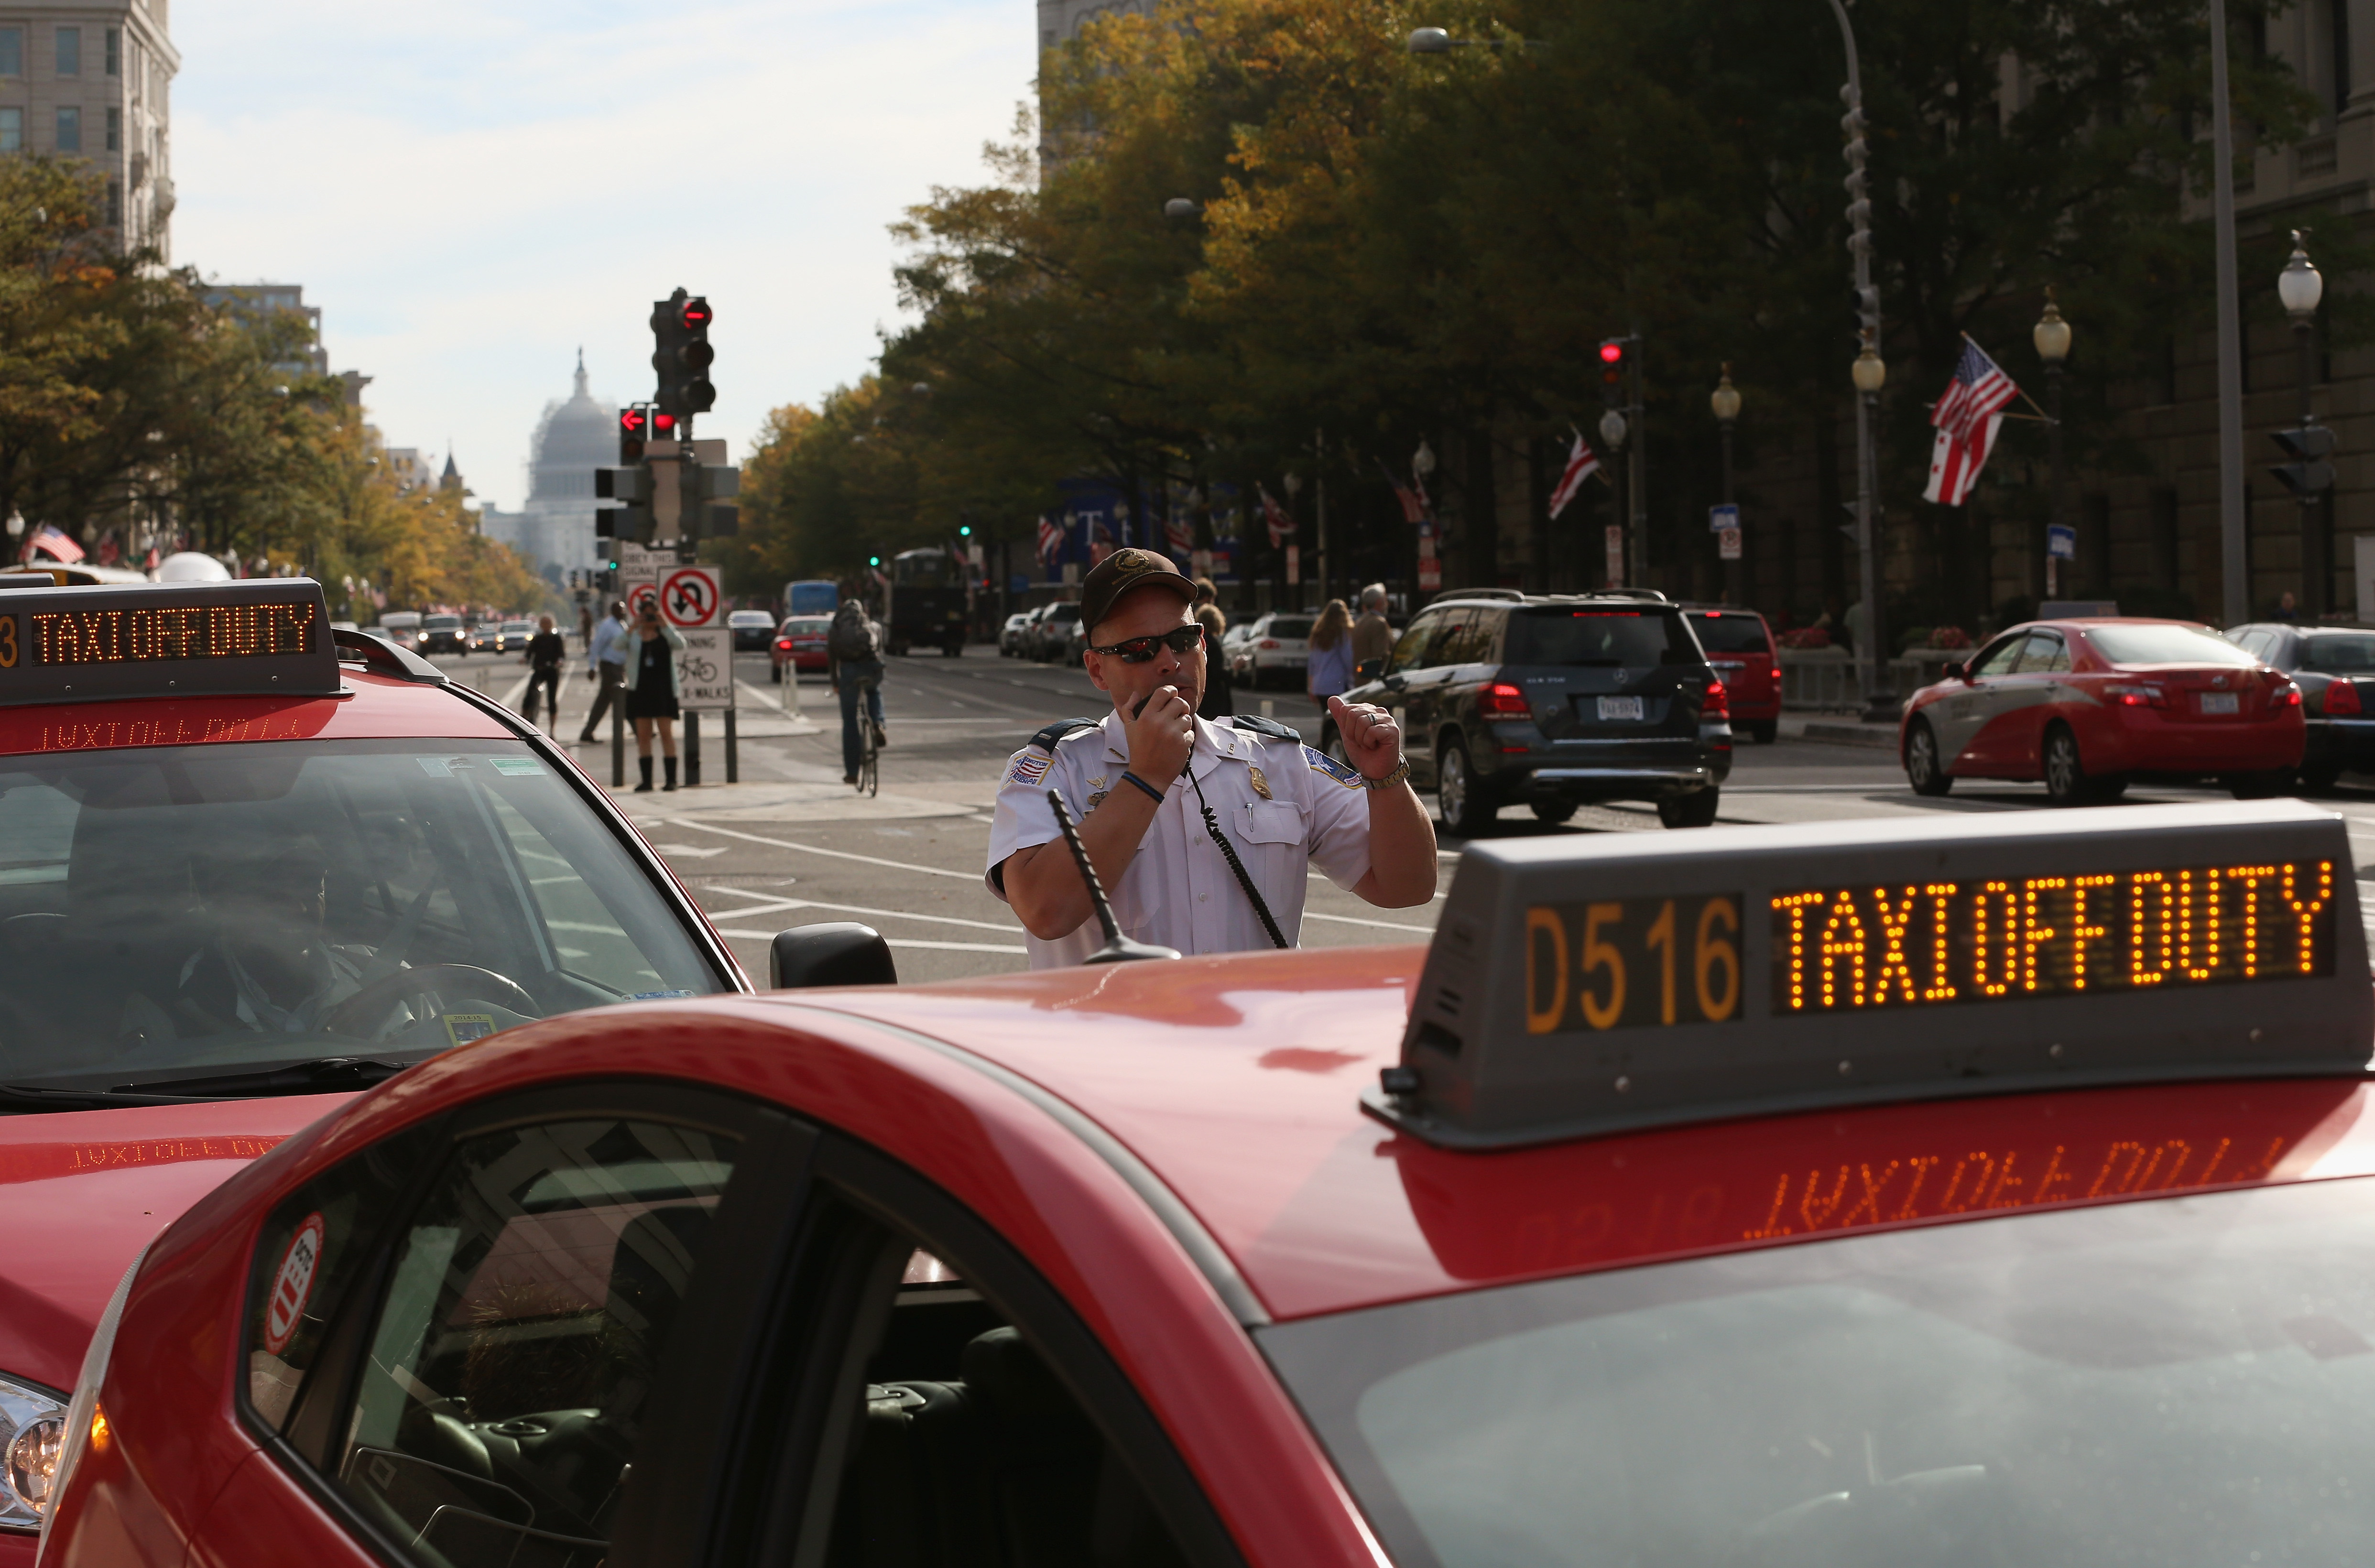 In a once-flourishing taxicab mecca, DC rides plummet